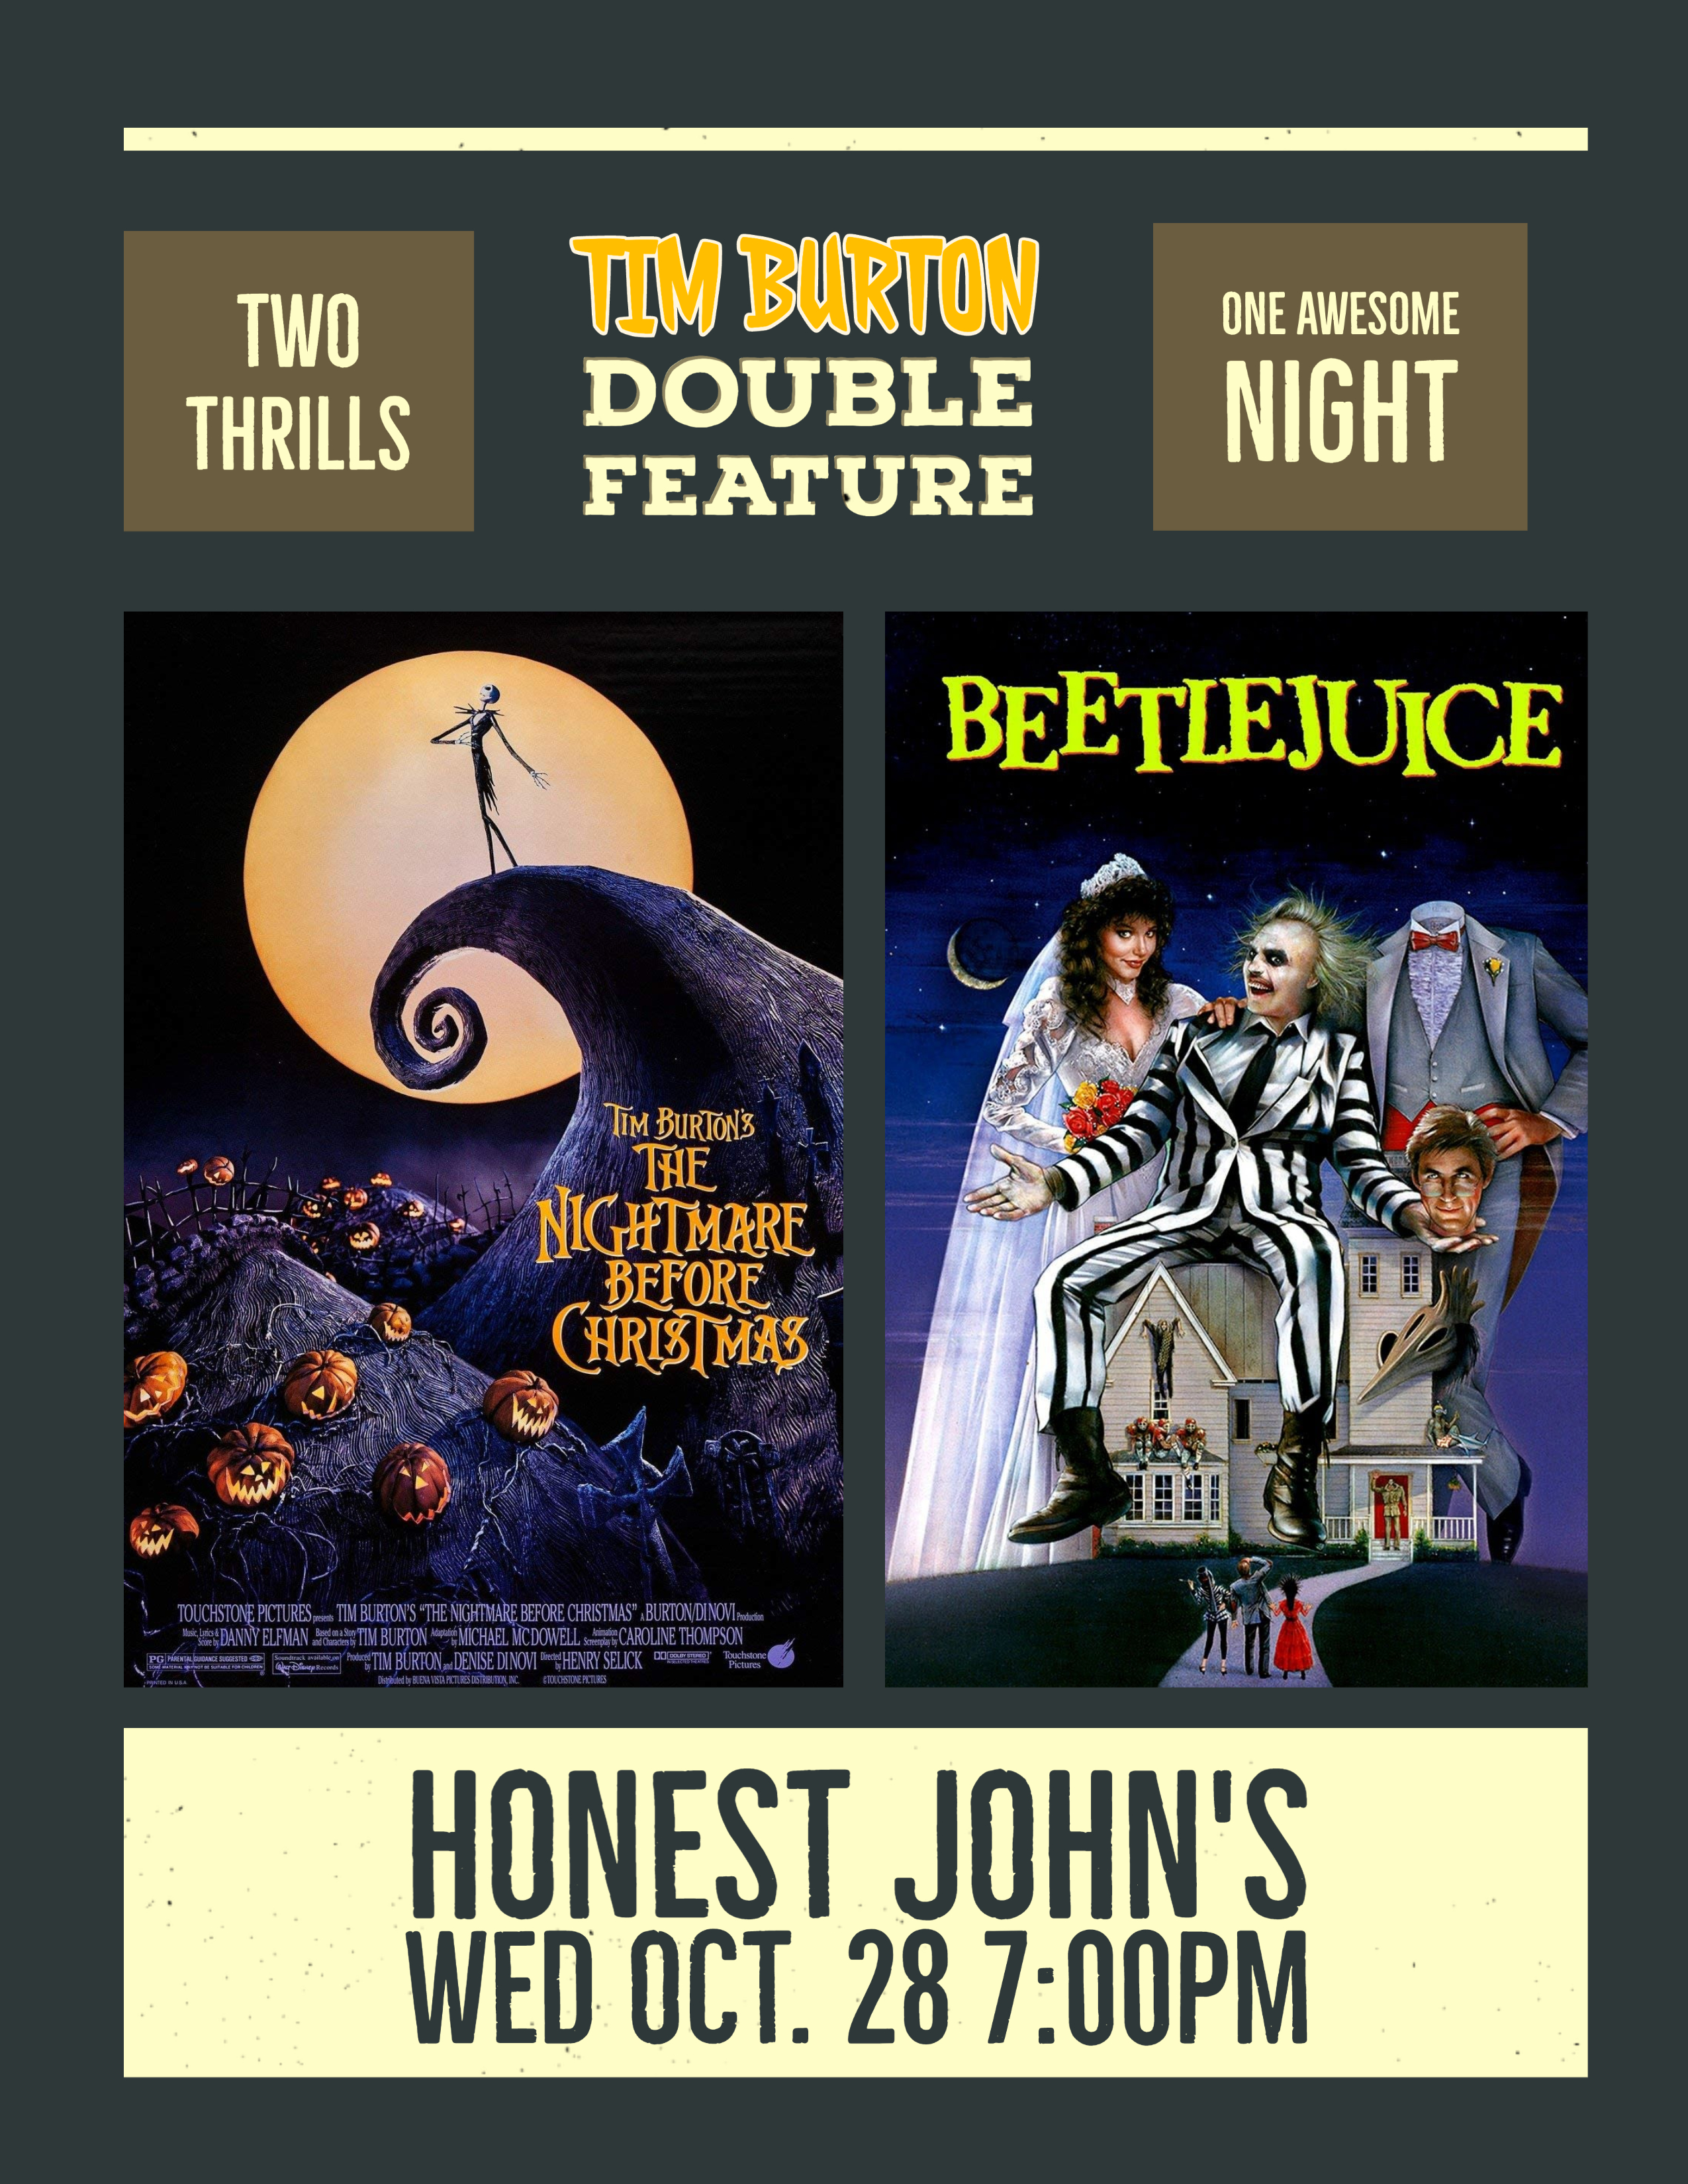 Poster for Tim Burton Double Feature at Honest John's